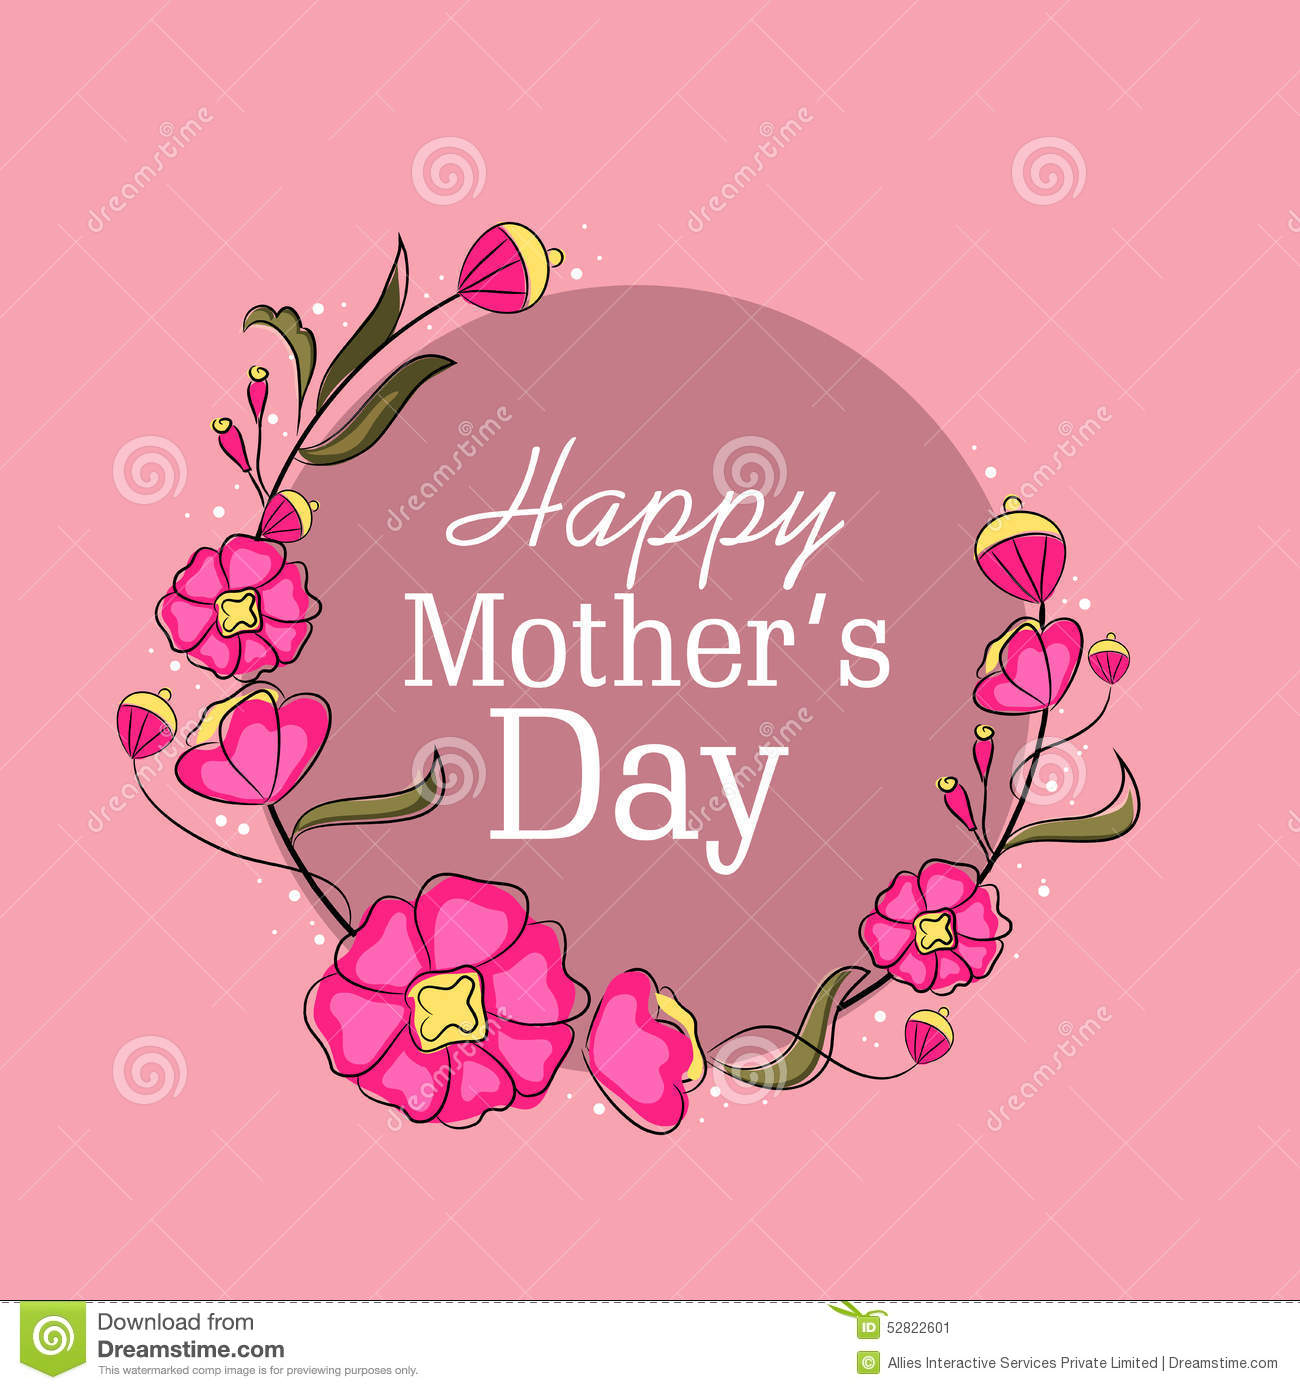 Greeting card design for happy mothers day celebration stock download greeting card design for happy mothers day celebration stock illustration illustration of holiday maxwellsz